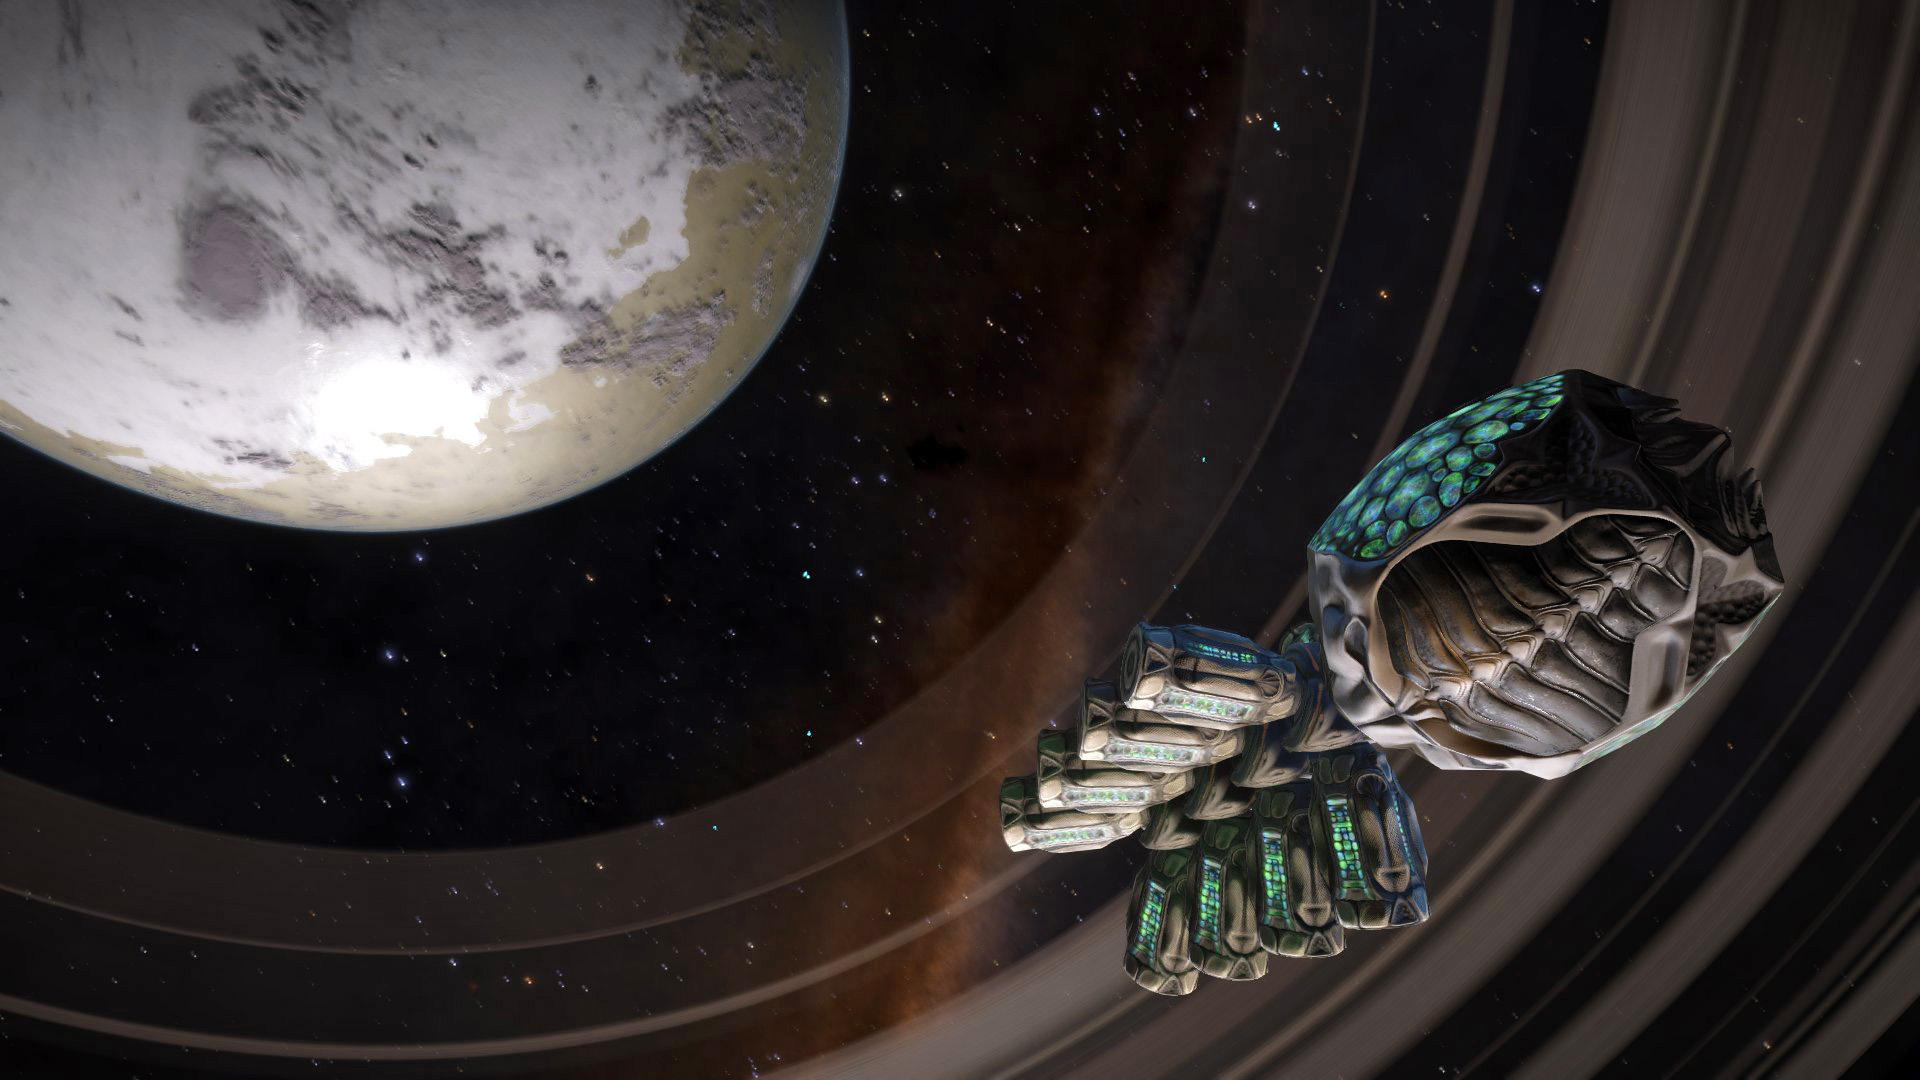 Elite: Dangerous screenshot: an unknown artefact in orbit of a ringed planet